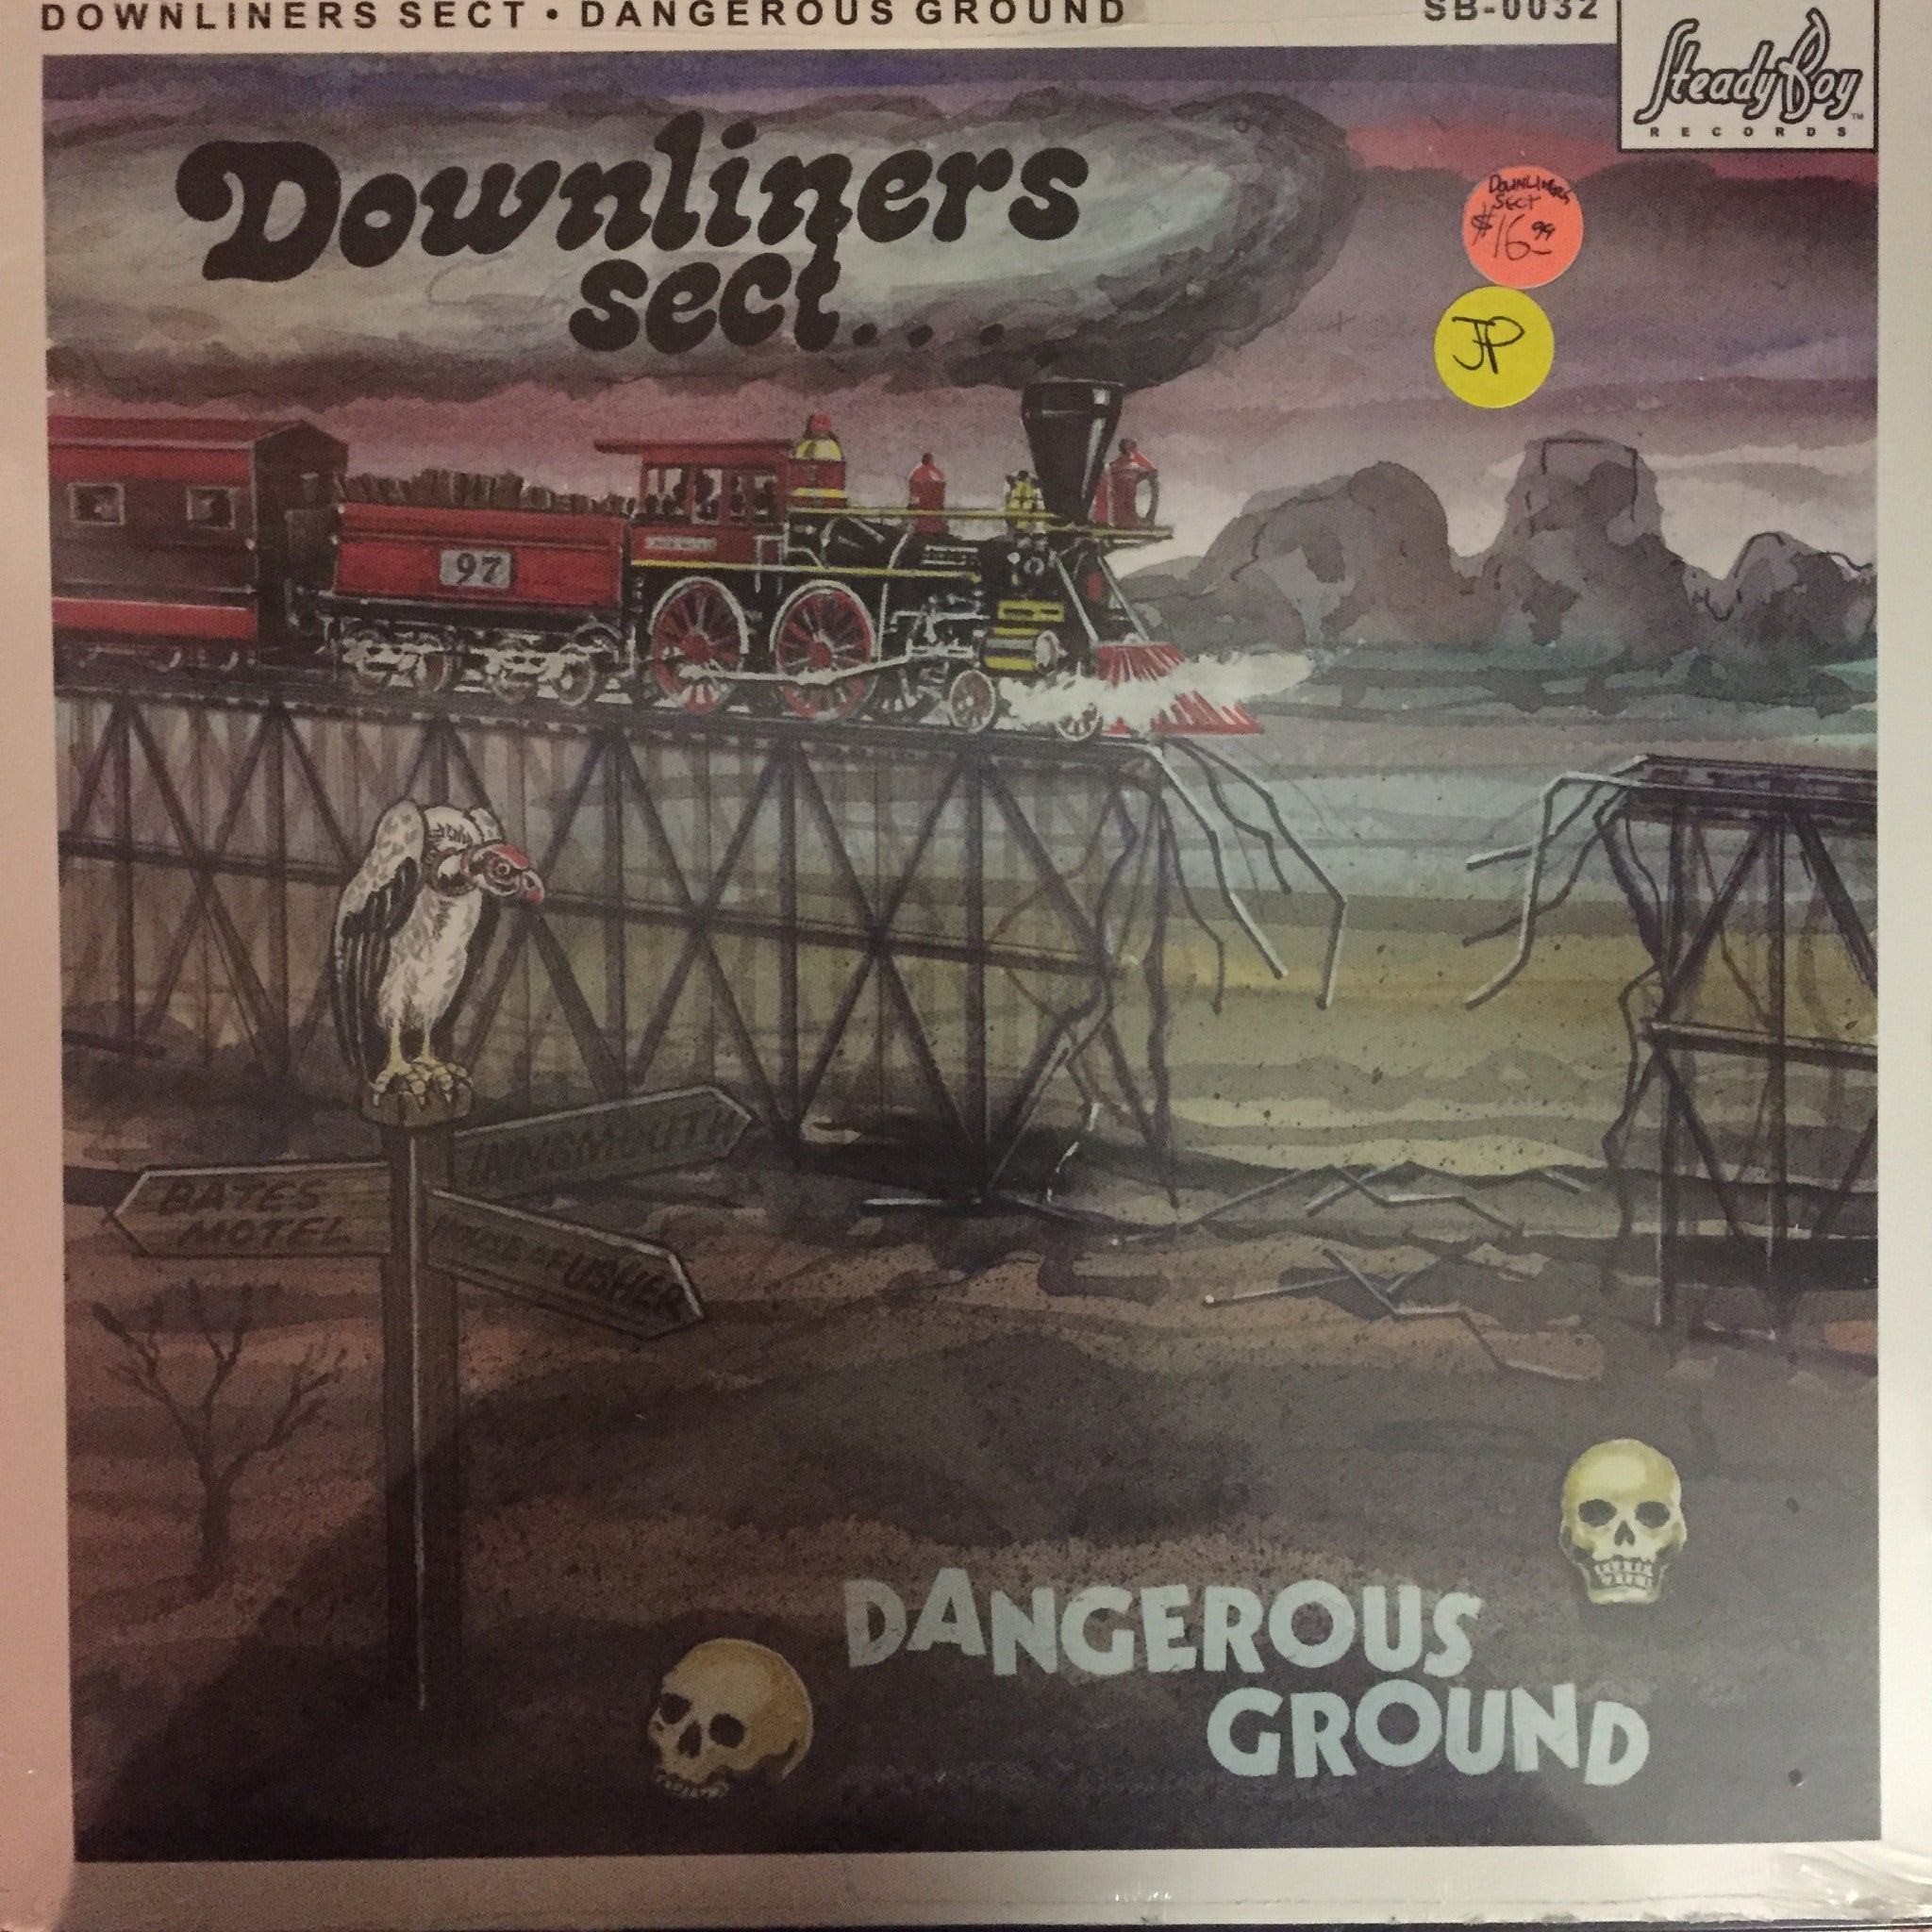 Downliners Sect - Dangerous Ground LP (SB-0032 - New and Sealed)